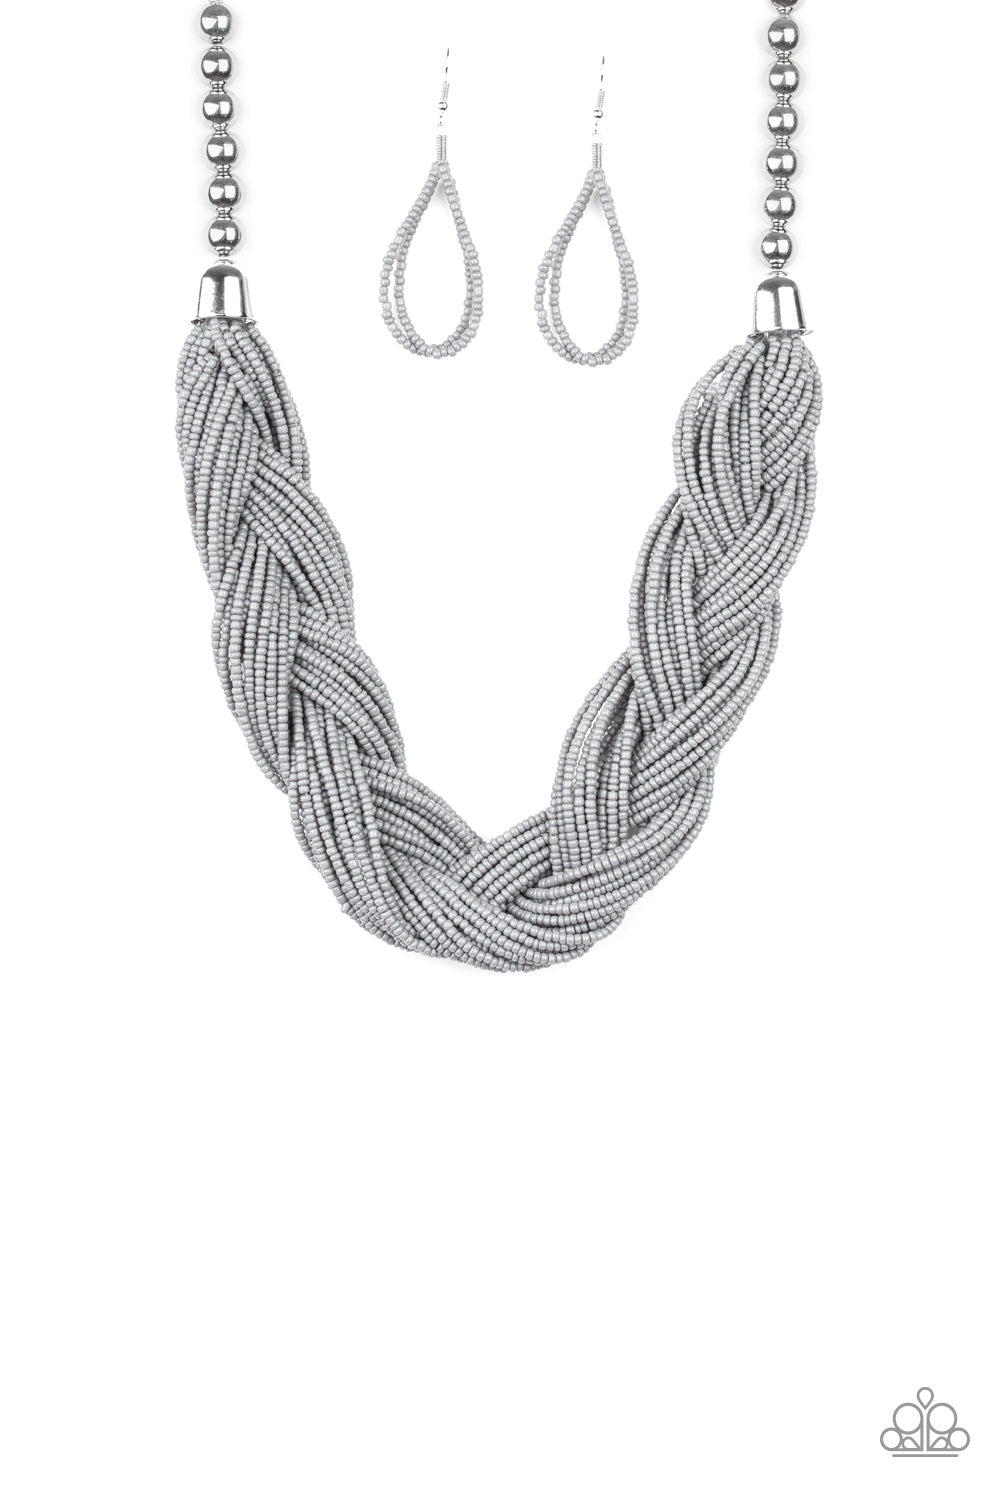 Braided necklace with silver beads